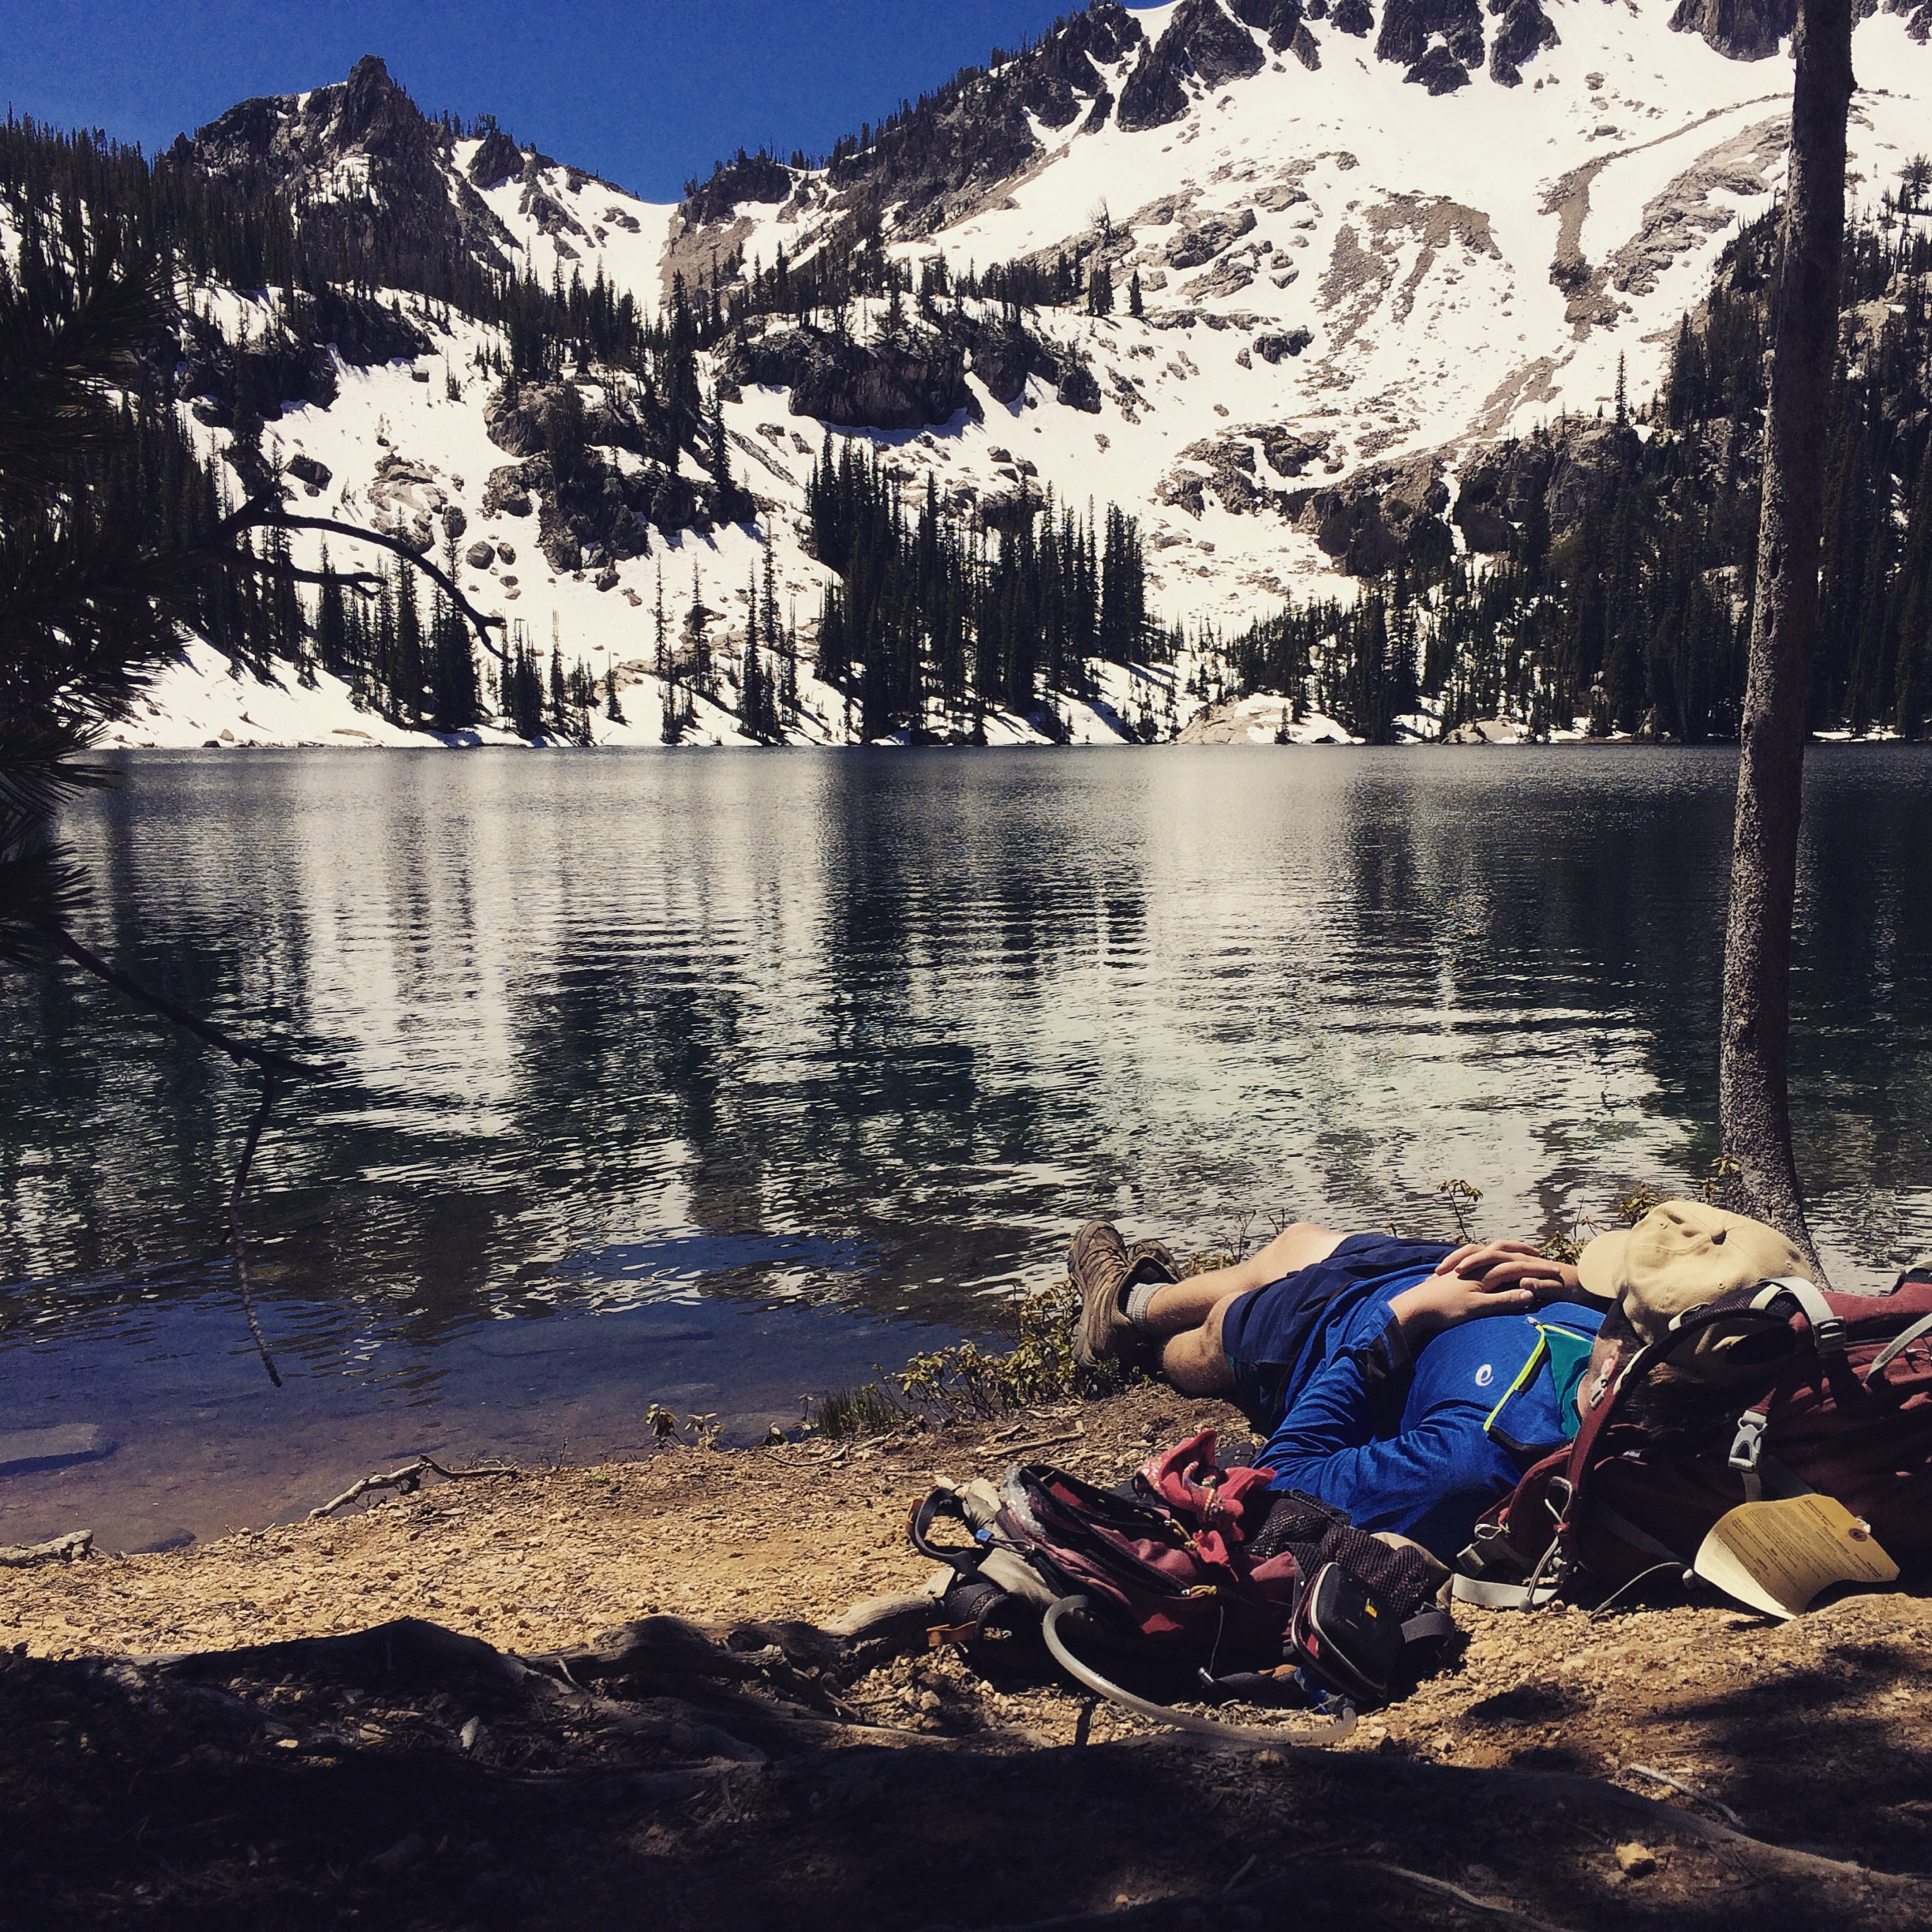 writing this post has helped to ease some fears--we've had our hard times, but we've taken some amazing naps next to glacially fed lakes in Idaho